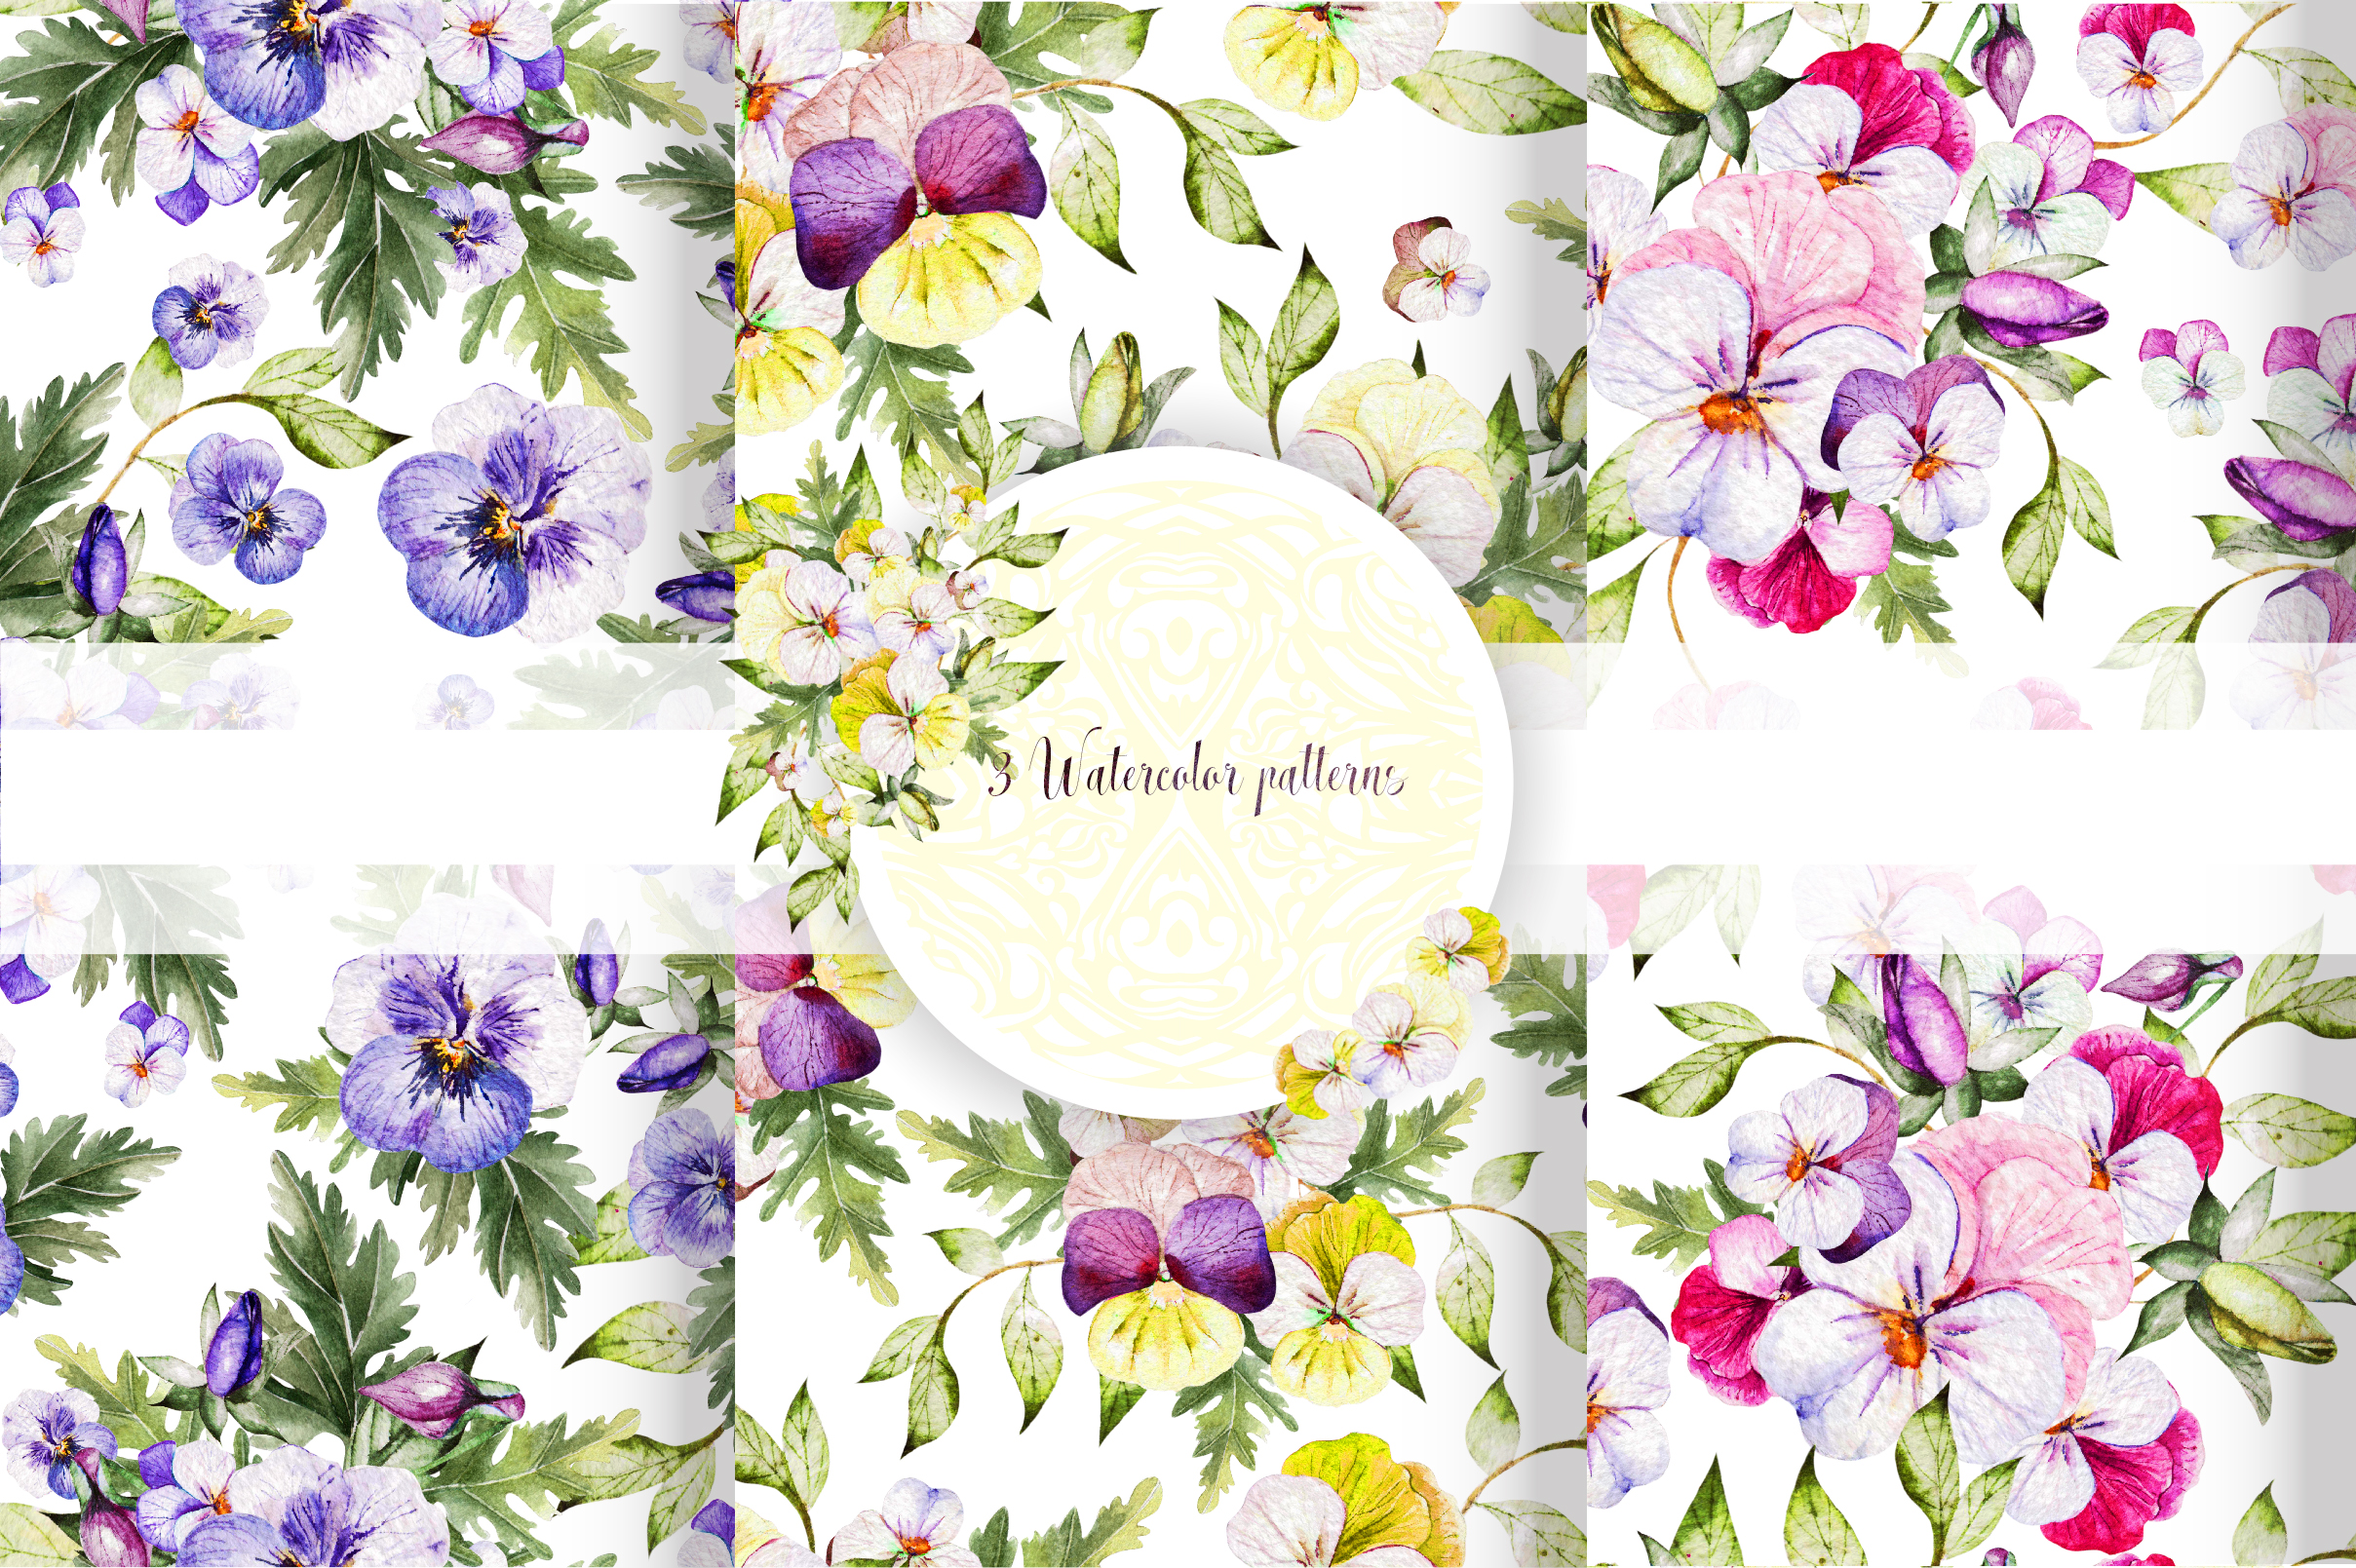 Watercolor PANSY FLOWERS example image 13